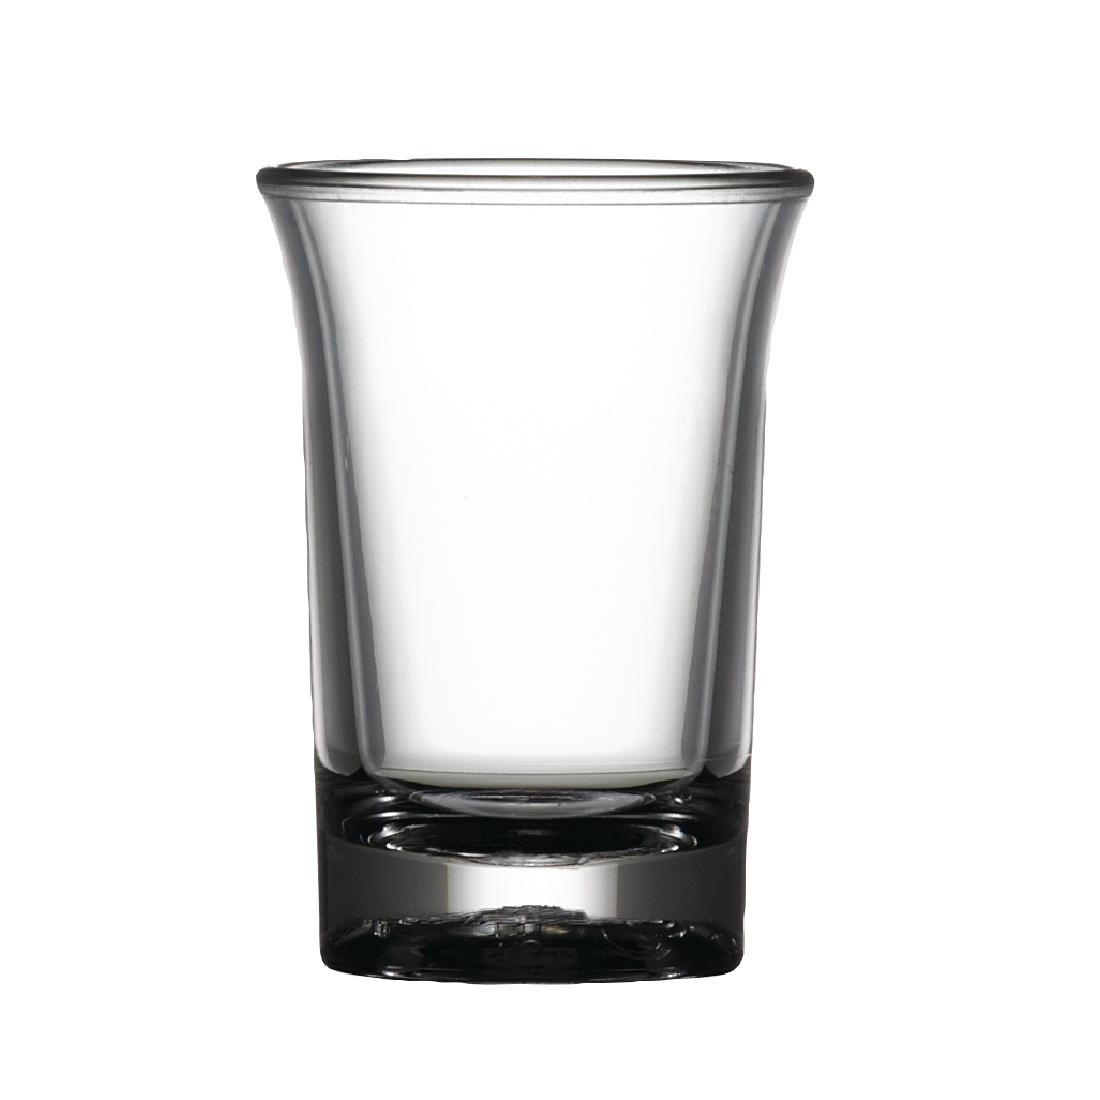 Image of BBP Polycarbonate Elite CE Shot Glass 25ml (Pack of 24) Pack of 24